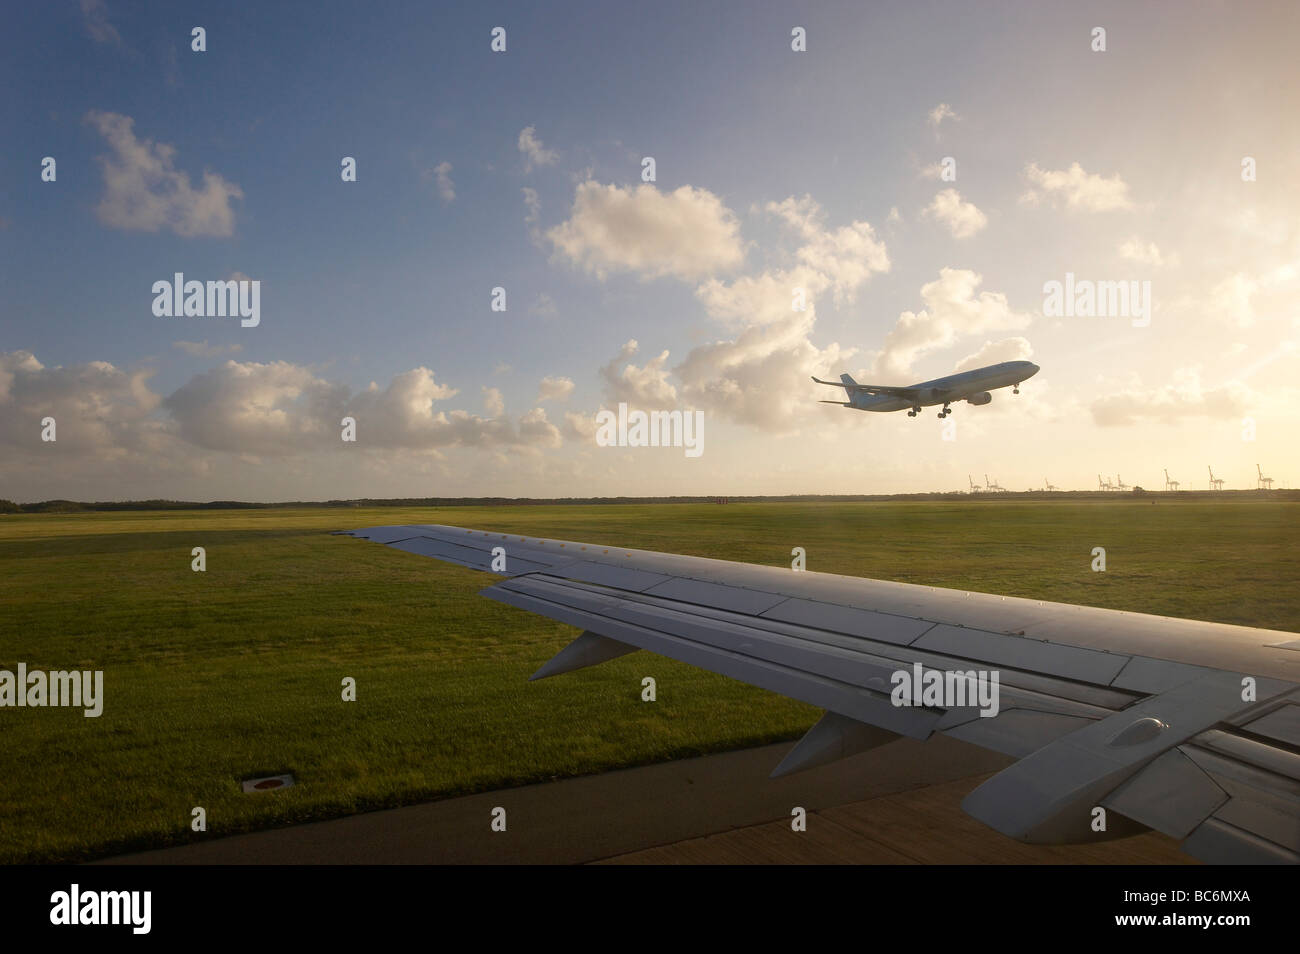 Aircraft taking off Stock Photo